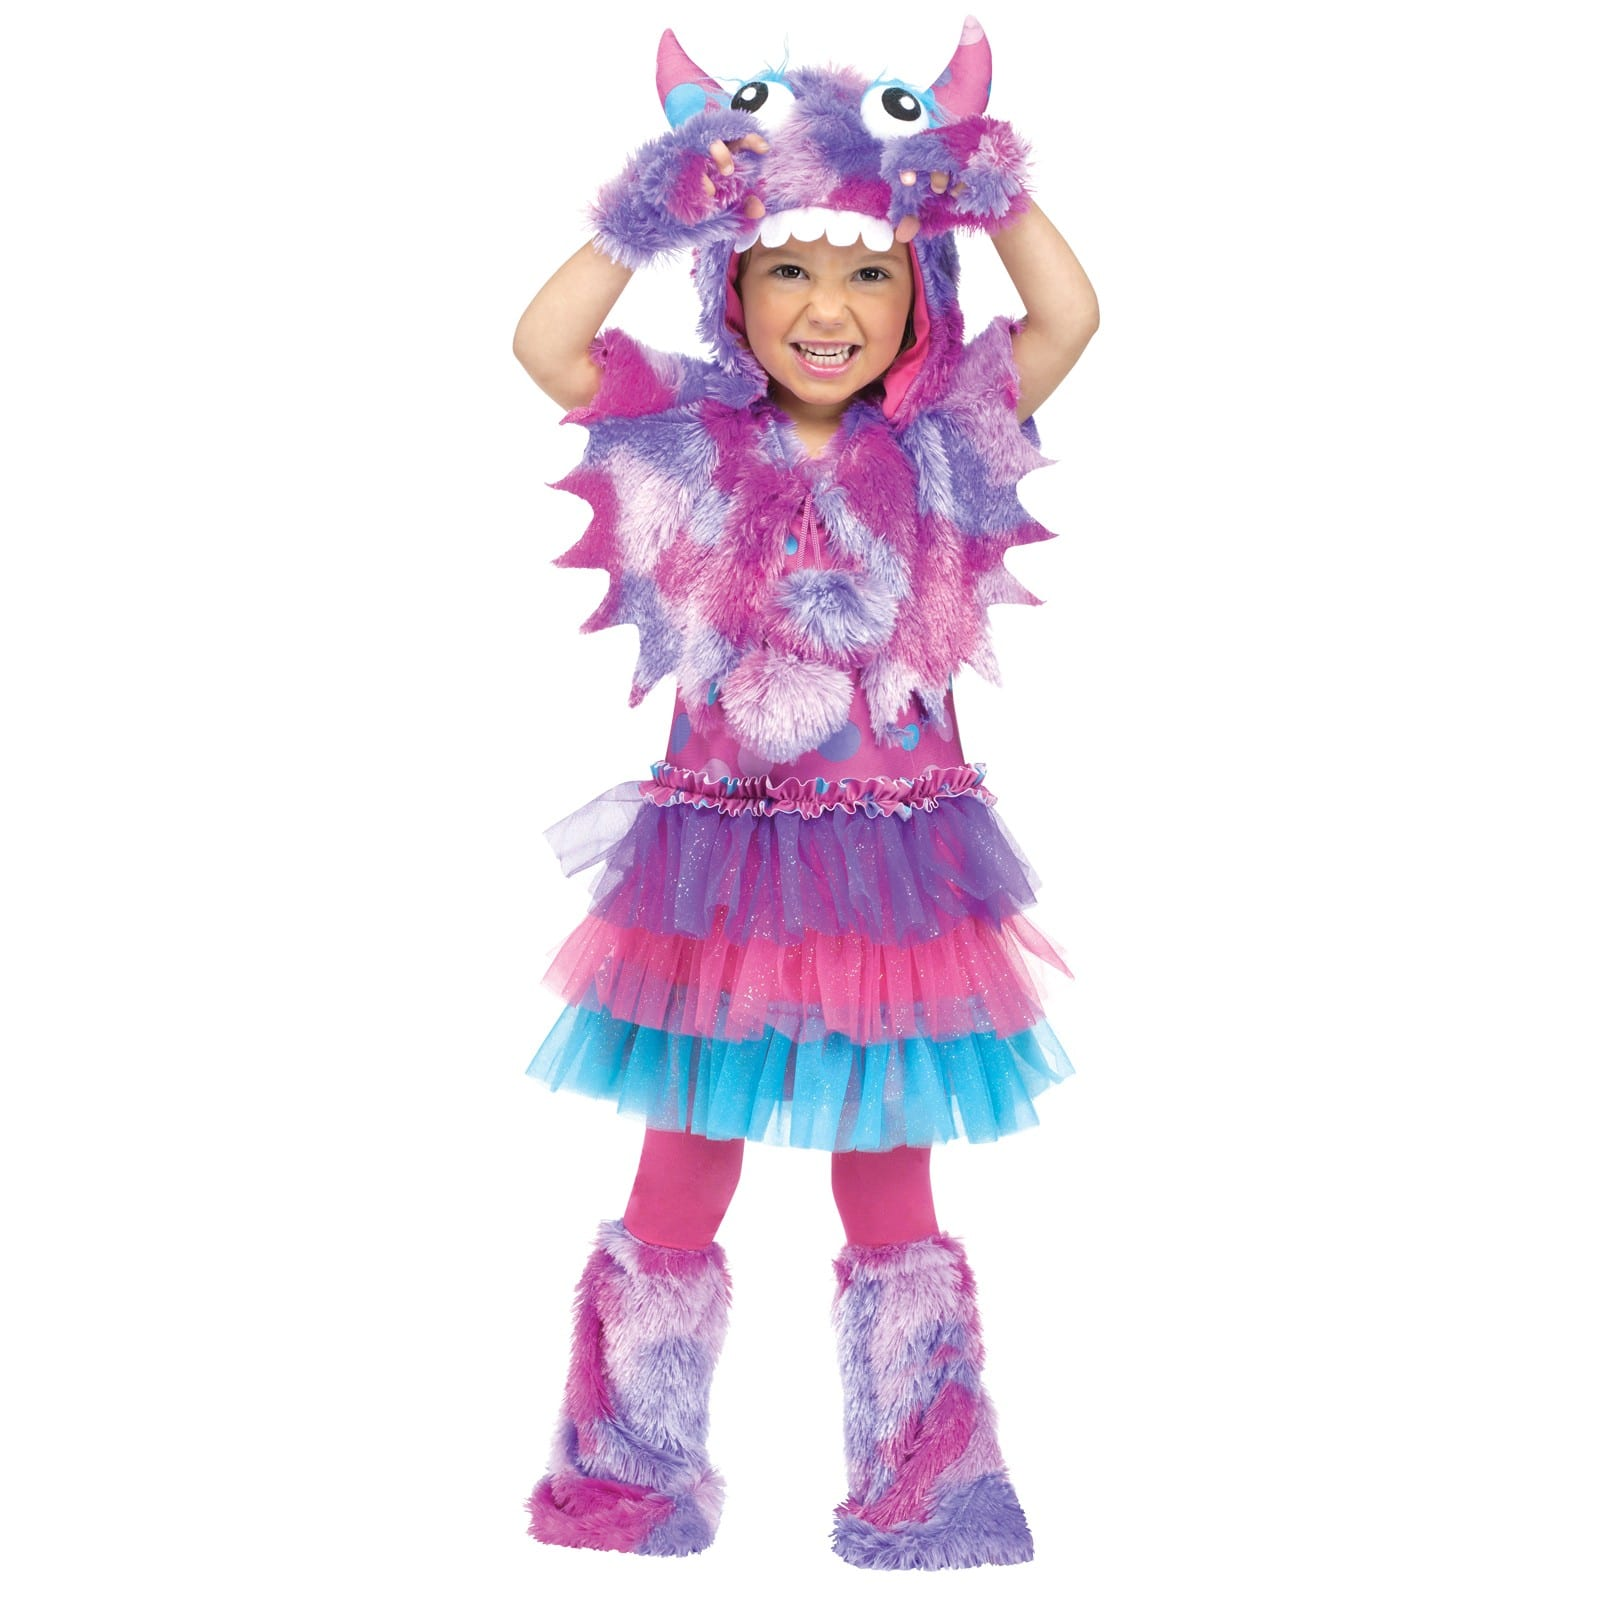 Top 10 Best Halloween Costume Ideas for kids 2018